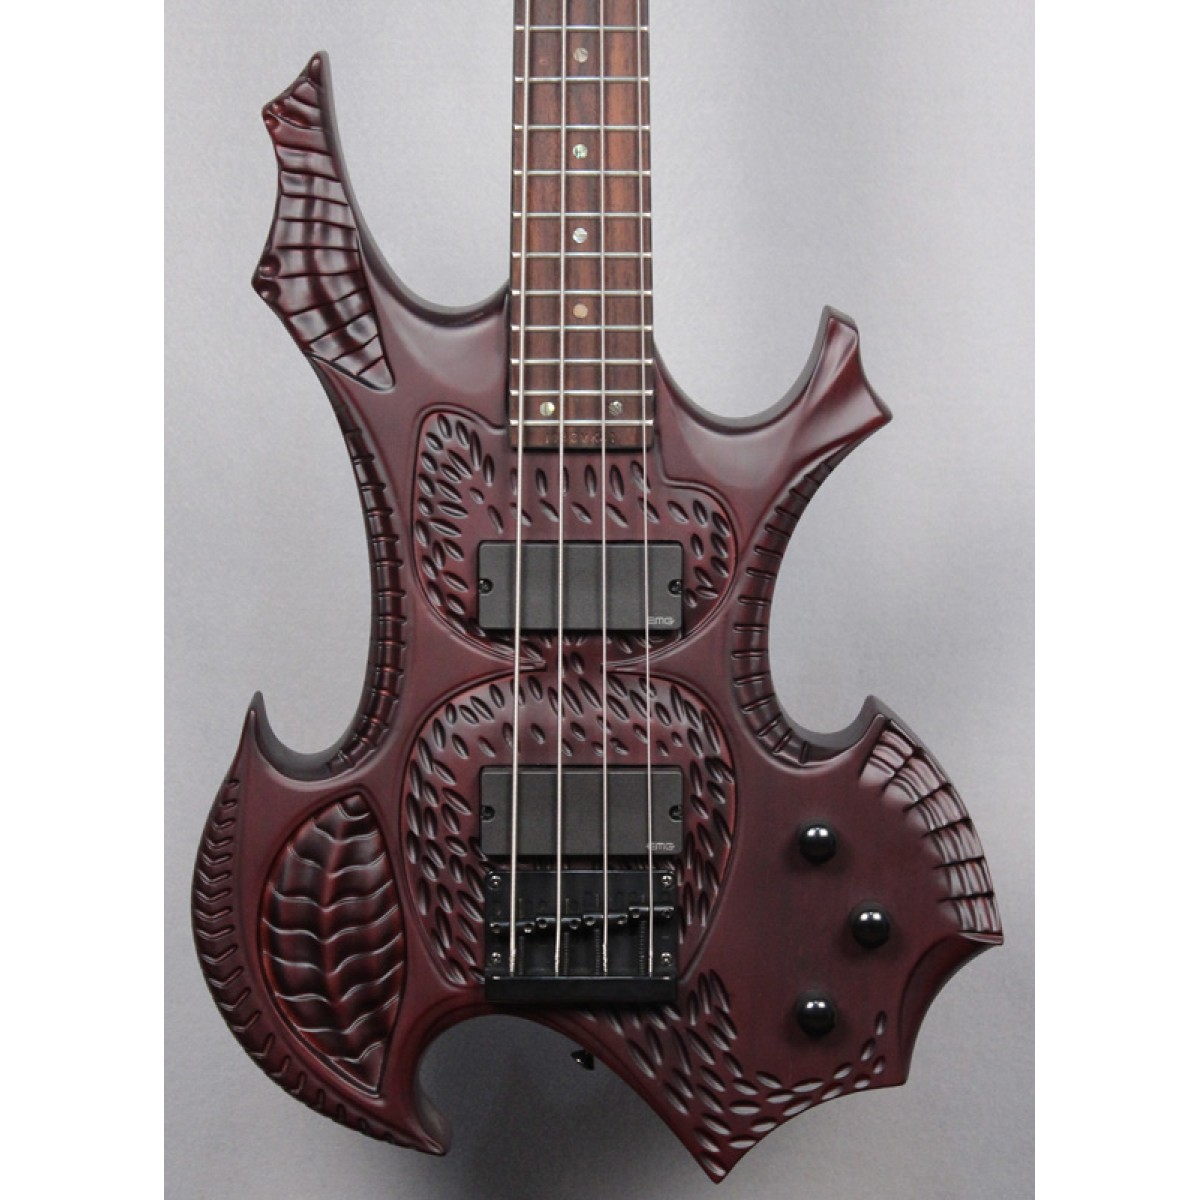 halo custom guitars gvk 4 string bass guitar. Black Bedroom Furniture Sets. Home Design Ideas